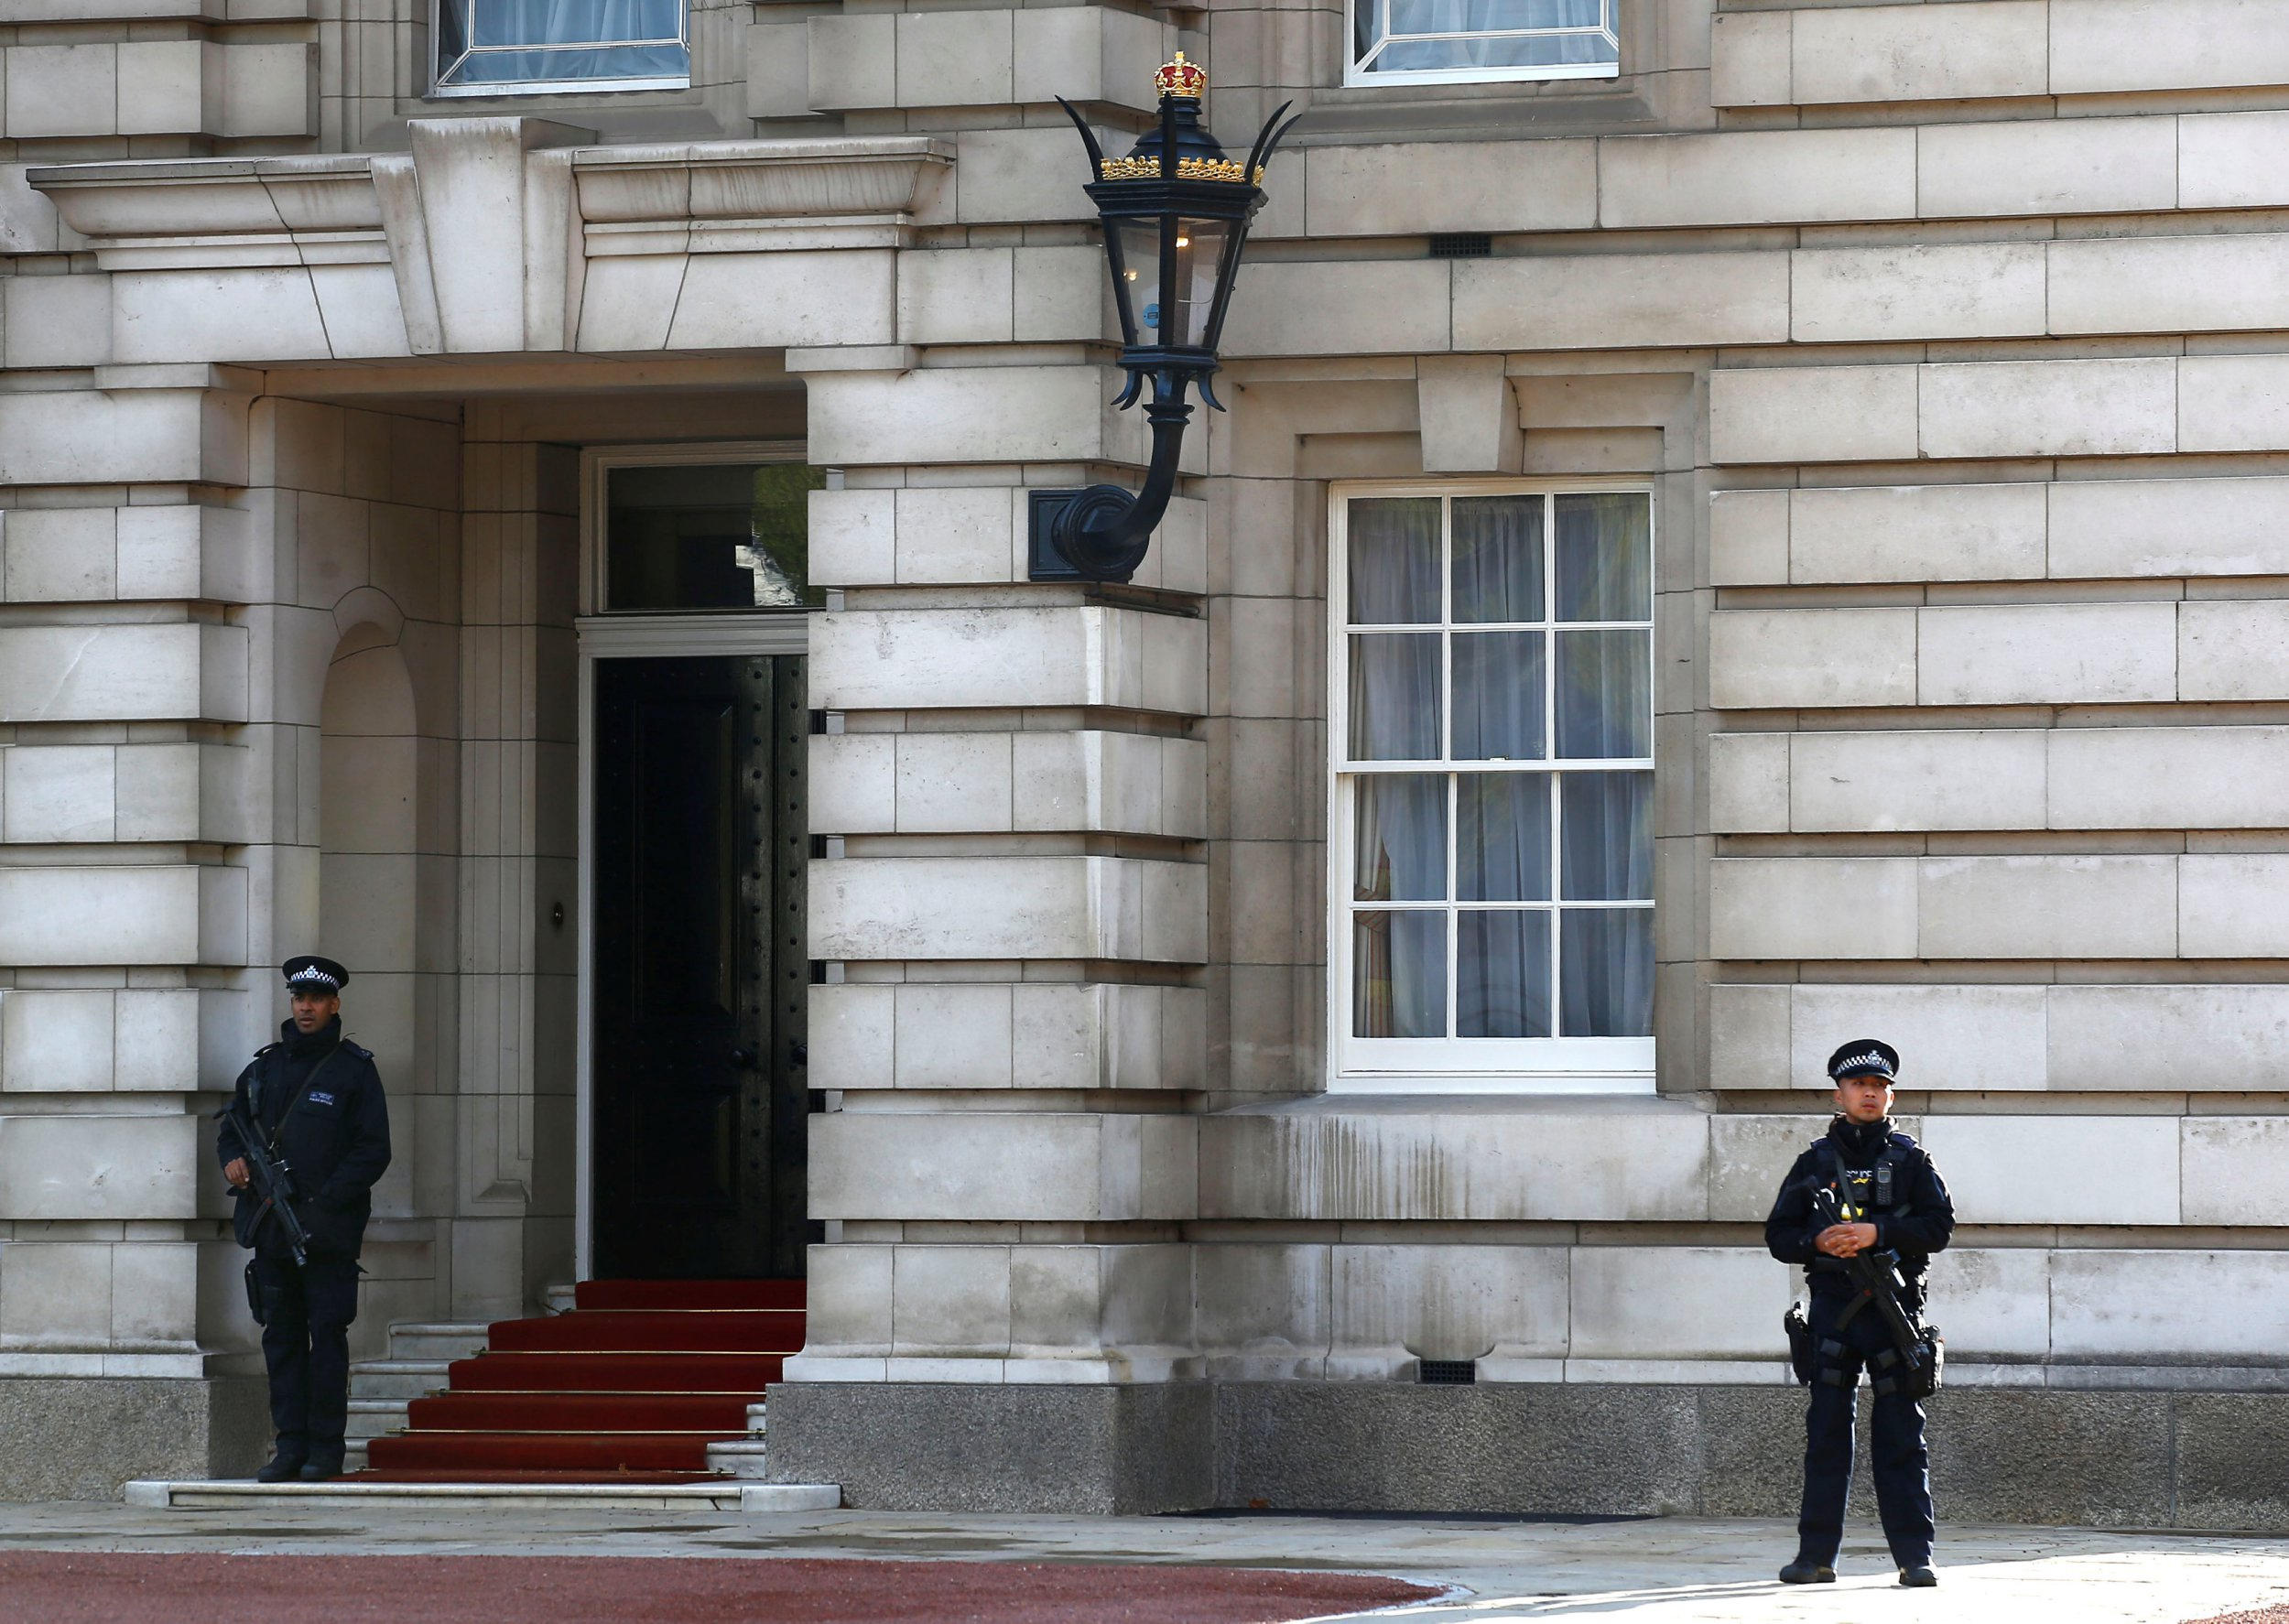 Armed police patrol the grounds of Buckingham Palace after a man was arrested at the visitor entrance of Britain's Queen Elizabeth's residence in London, Britain, September 23, 2018. REUTERS/Henry Nicholls